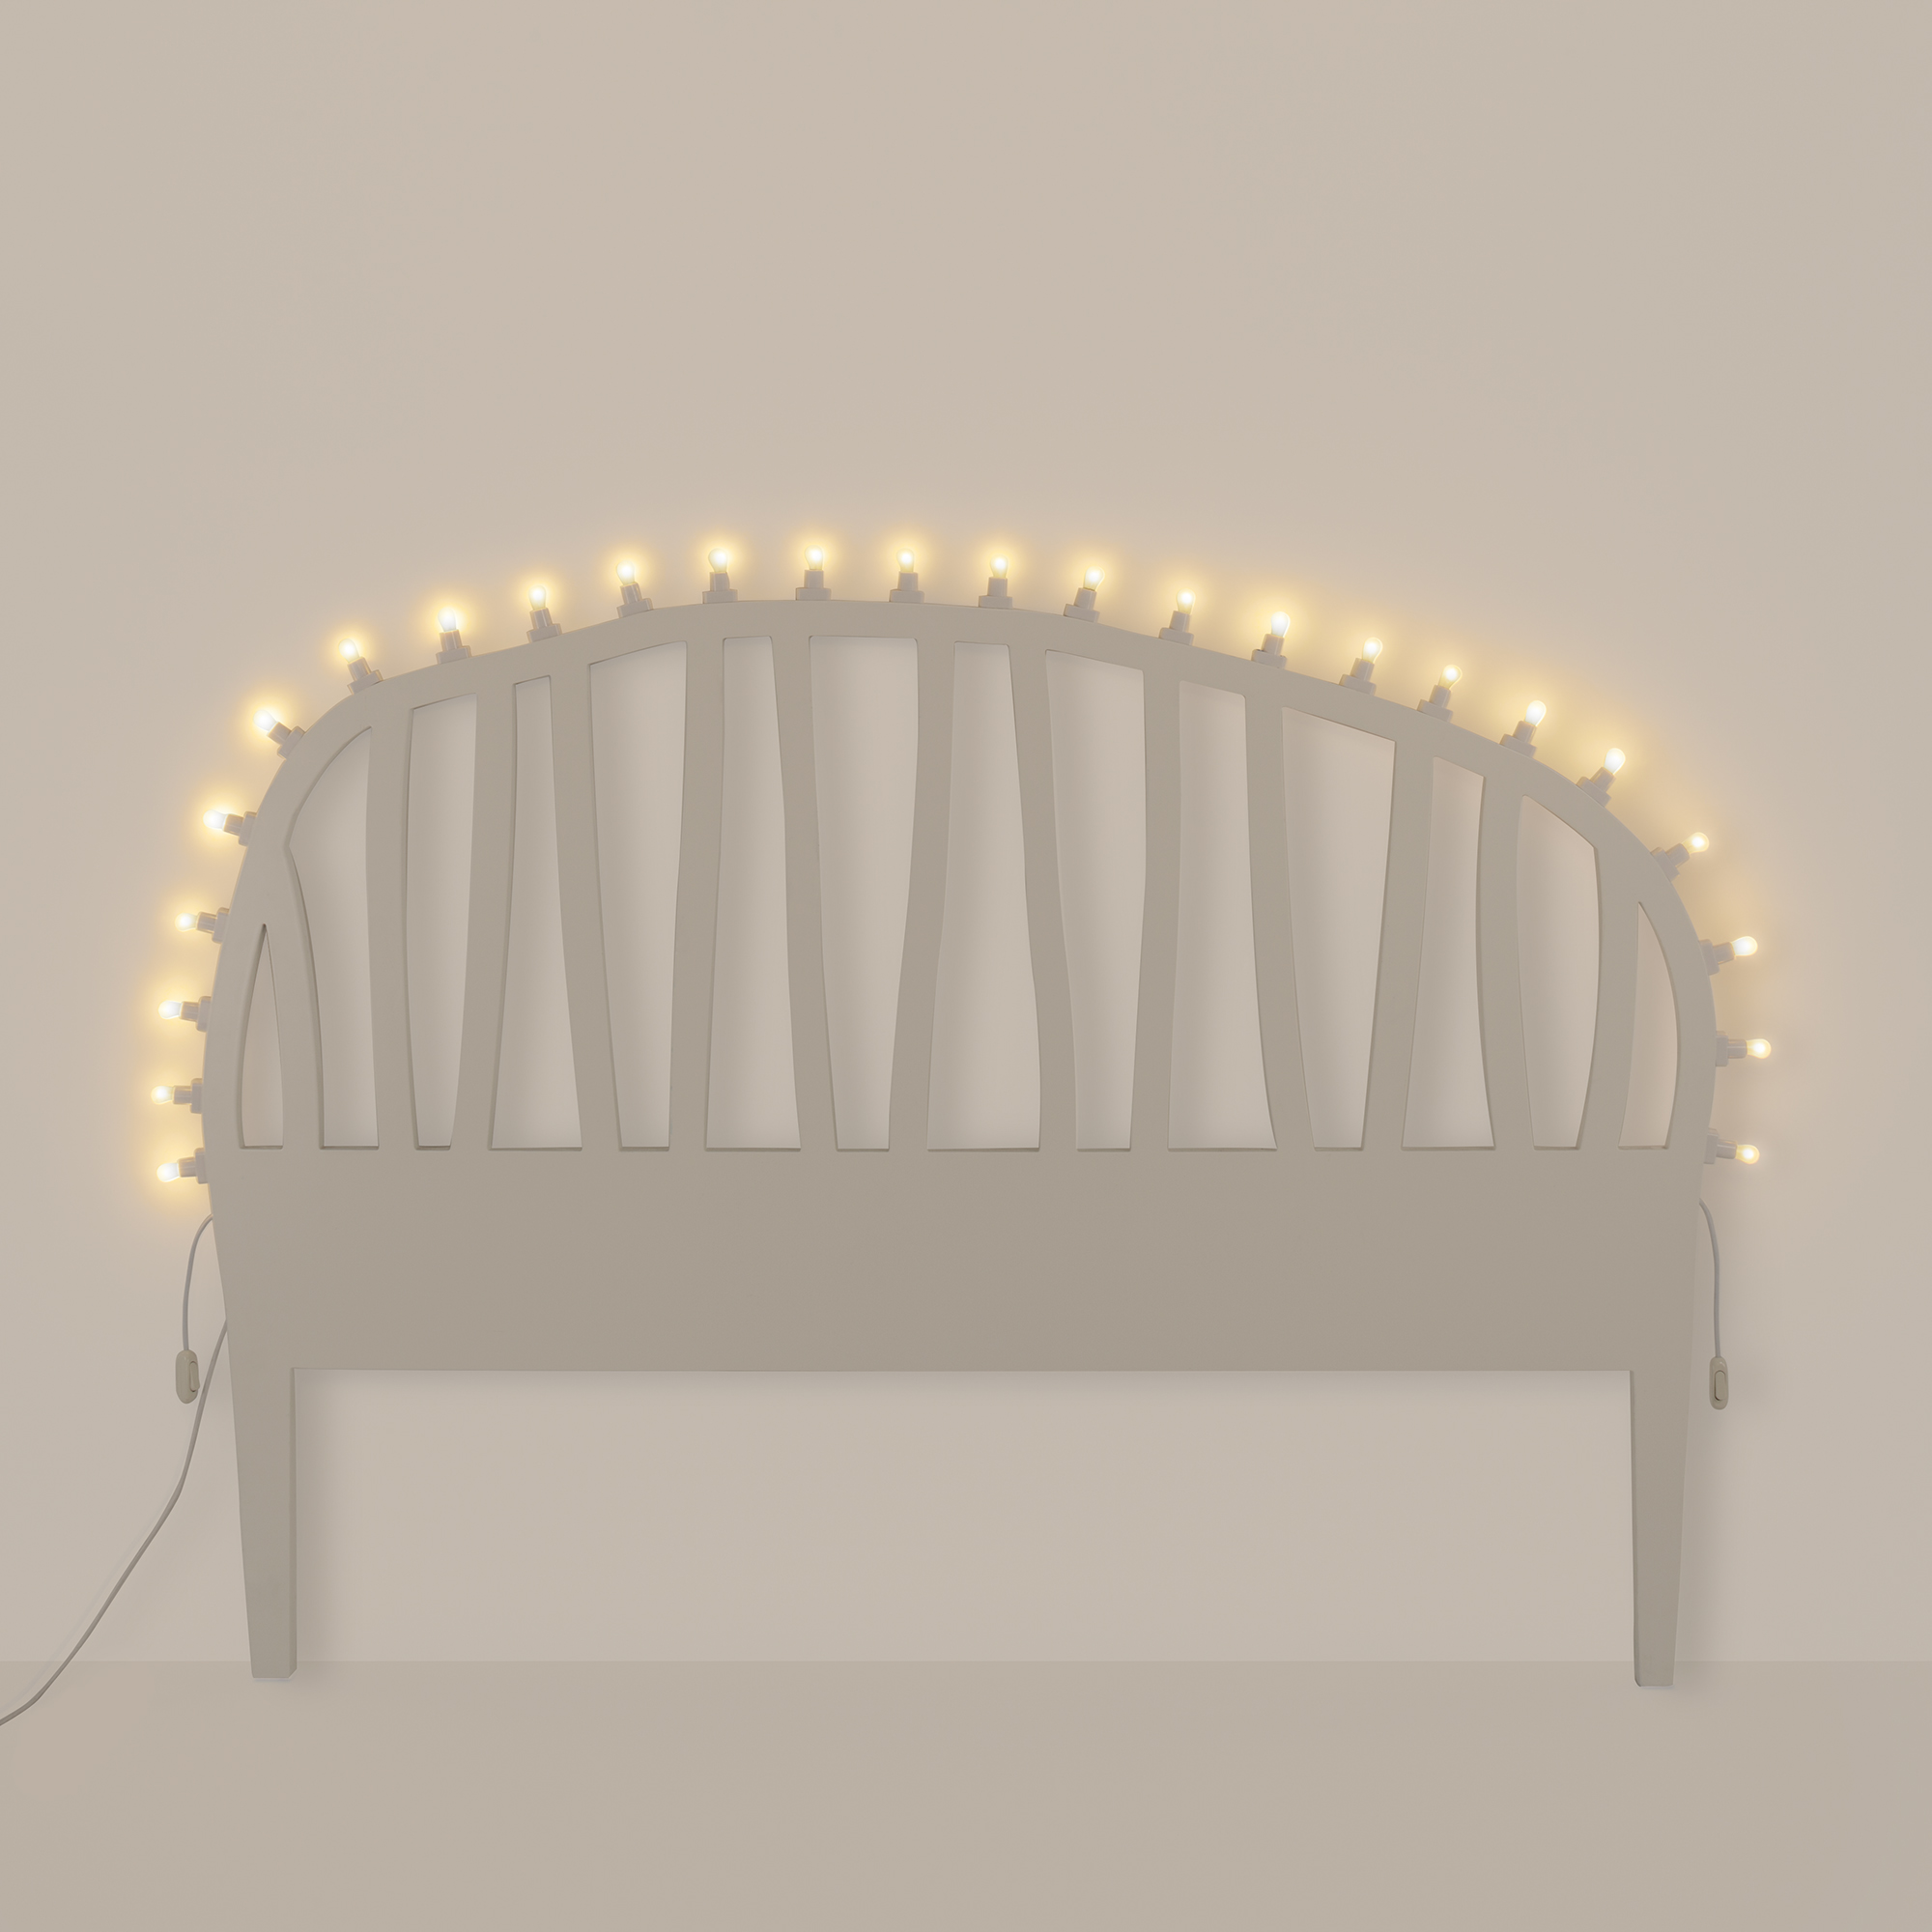 Headboard with Bulbs Seletti Luminaire Design